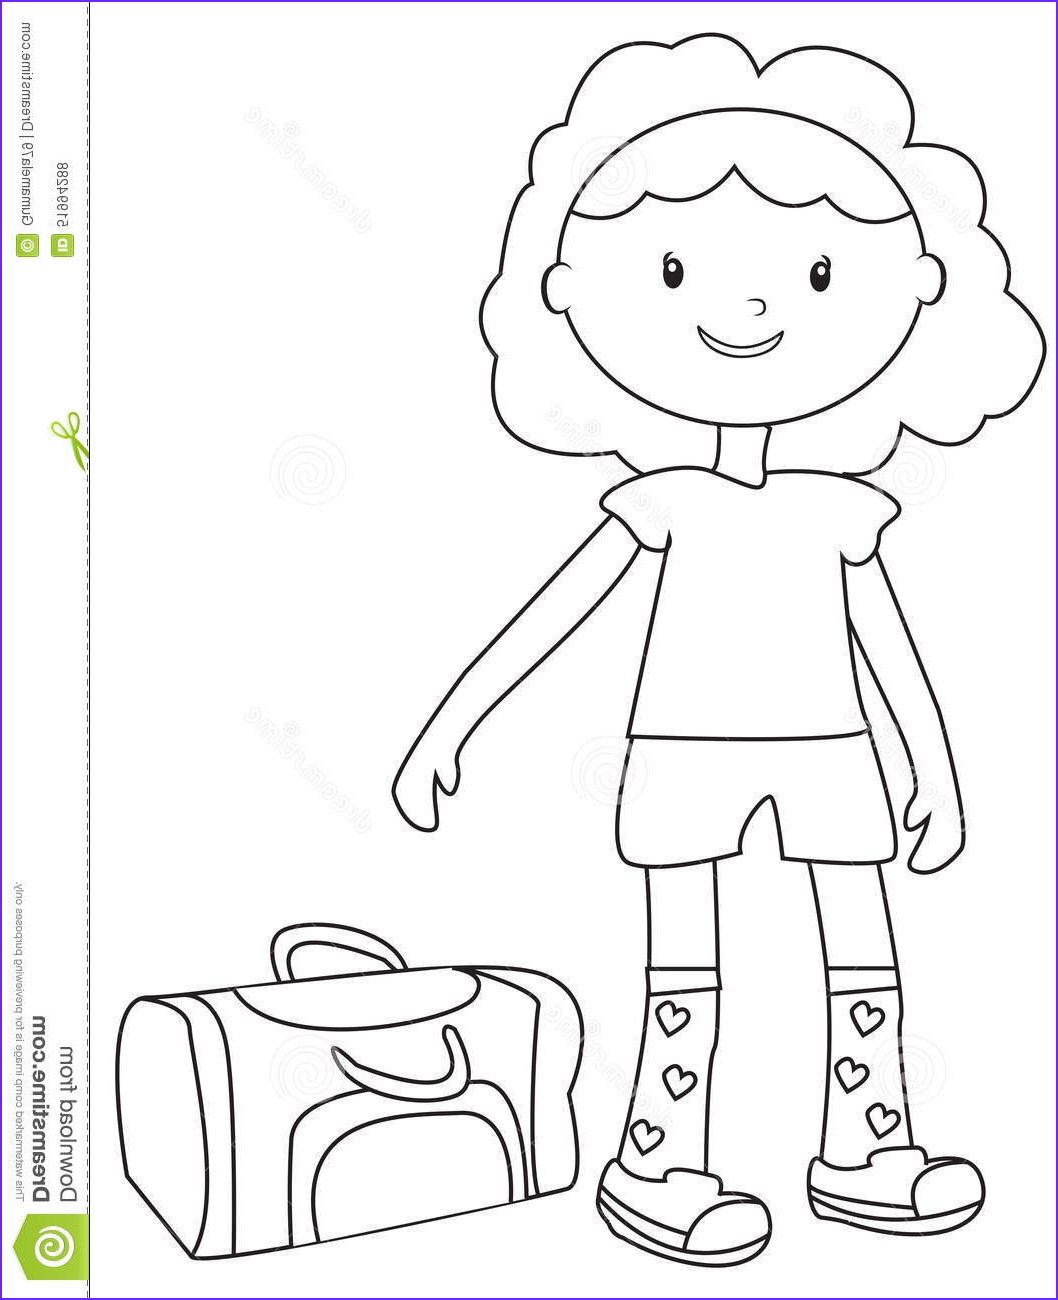 stock illustration girl duffel bag coloring page useful as book kids image